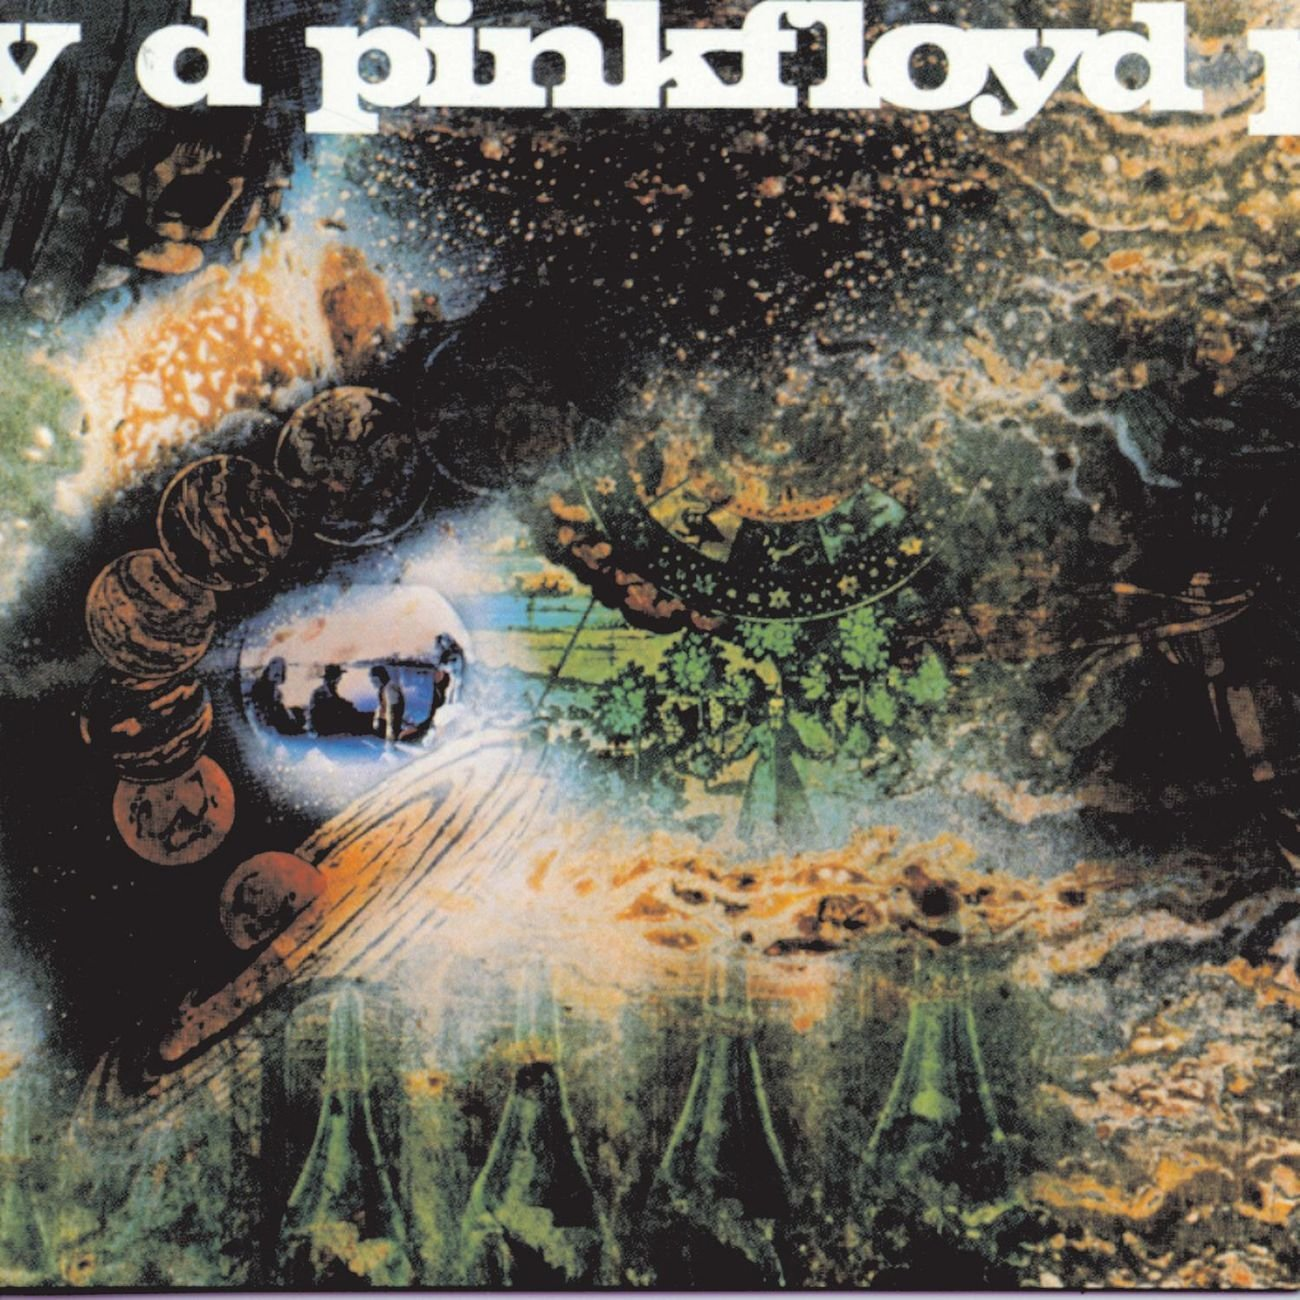 Pink Floyd | A Saucerful of Secrets album cover